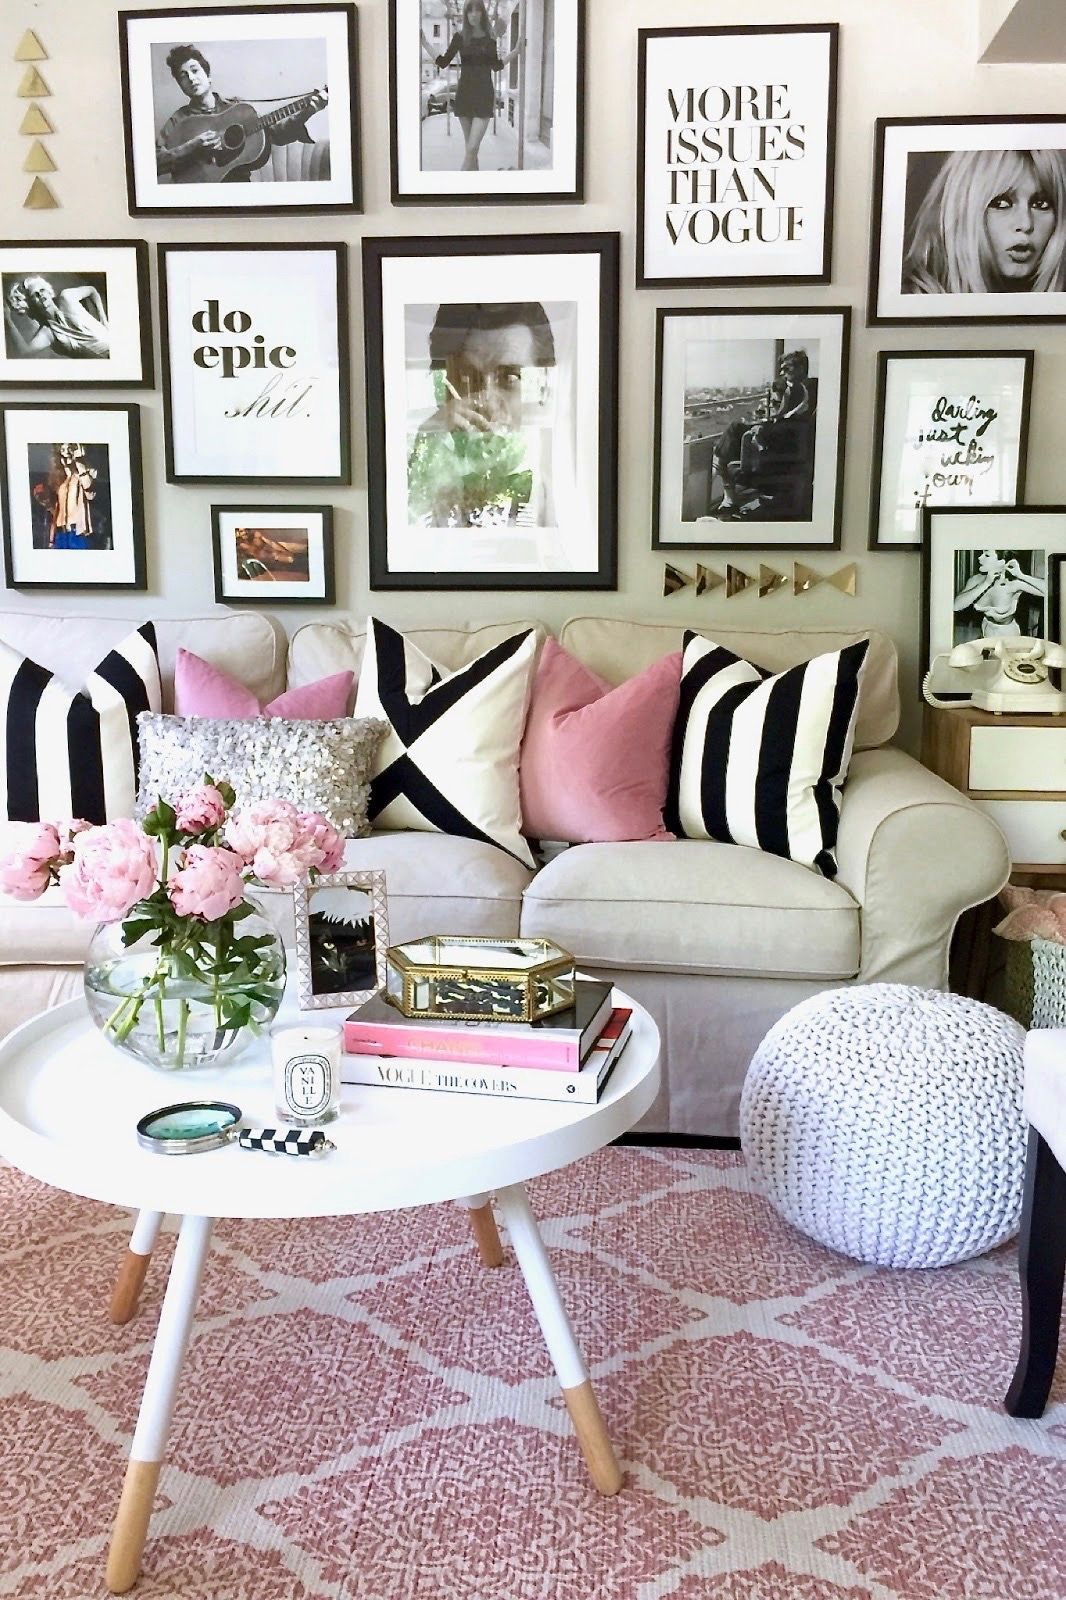 House Pretty in Pink An Apartment Refresh